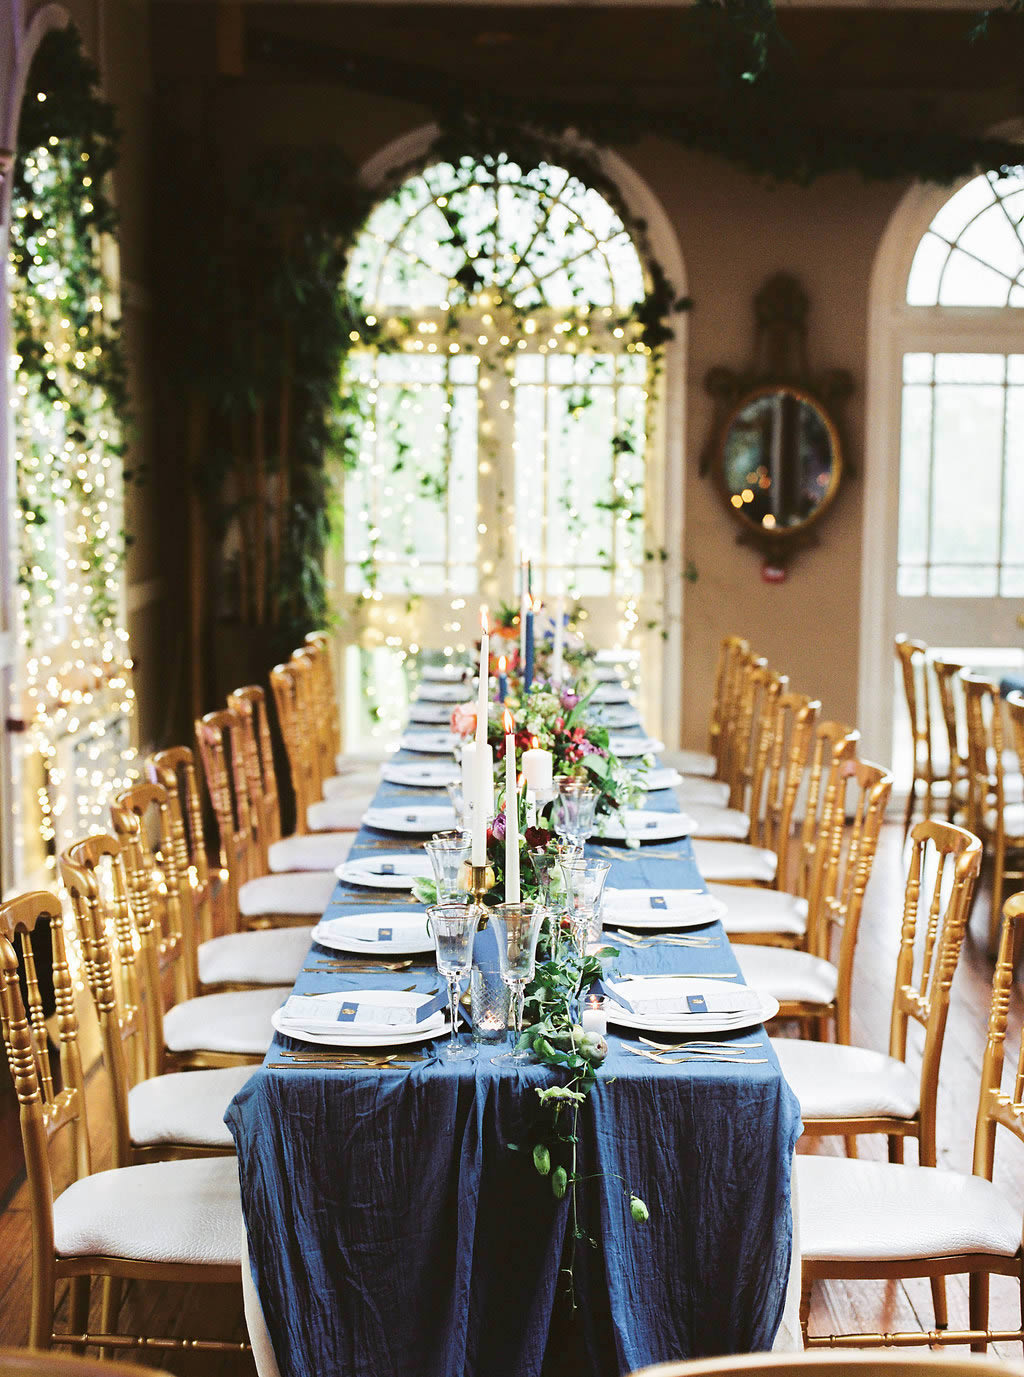 Top tips for smaller wedding intimate wedding venue cork for Best intimate wedding venues